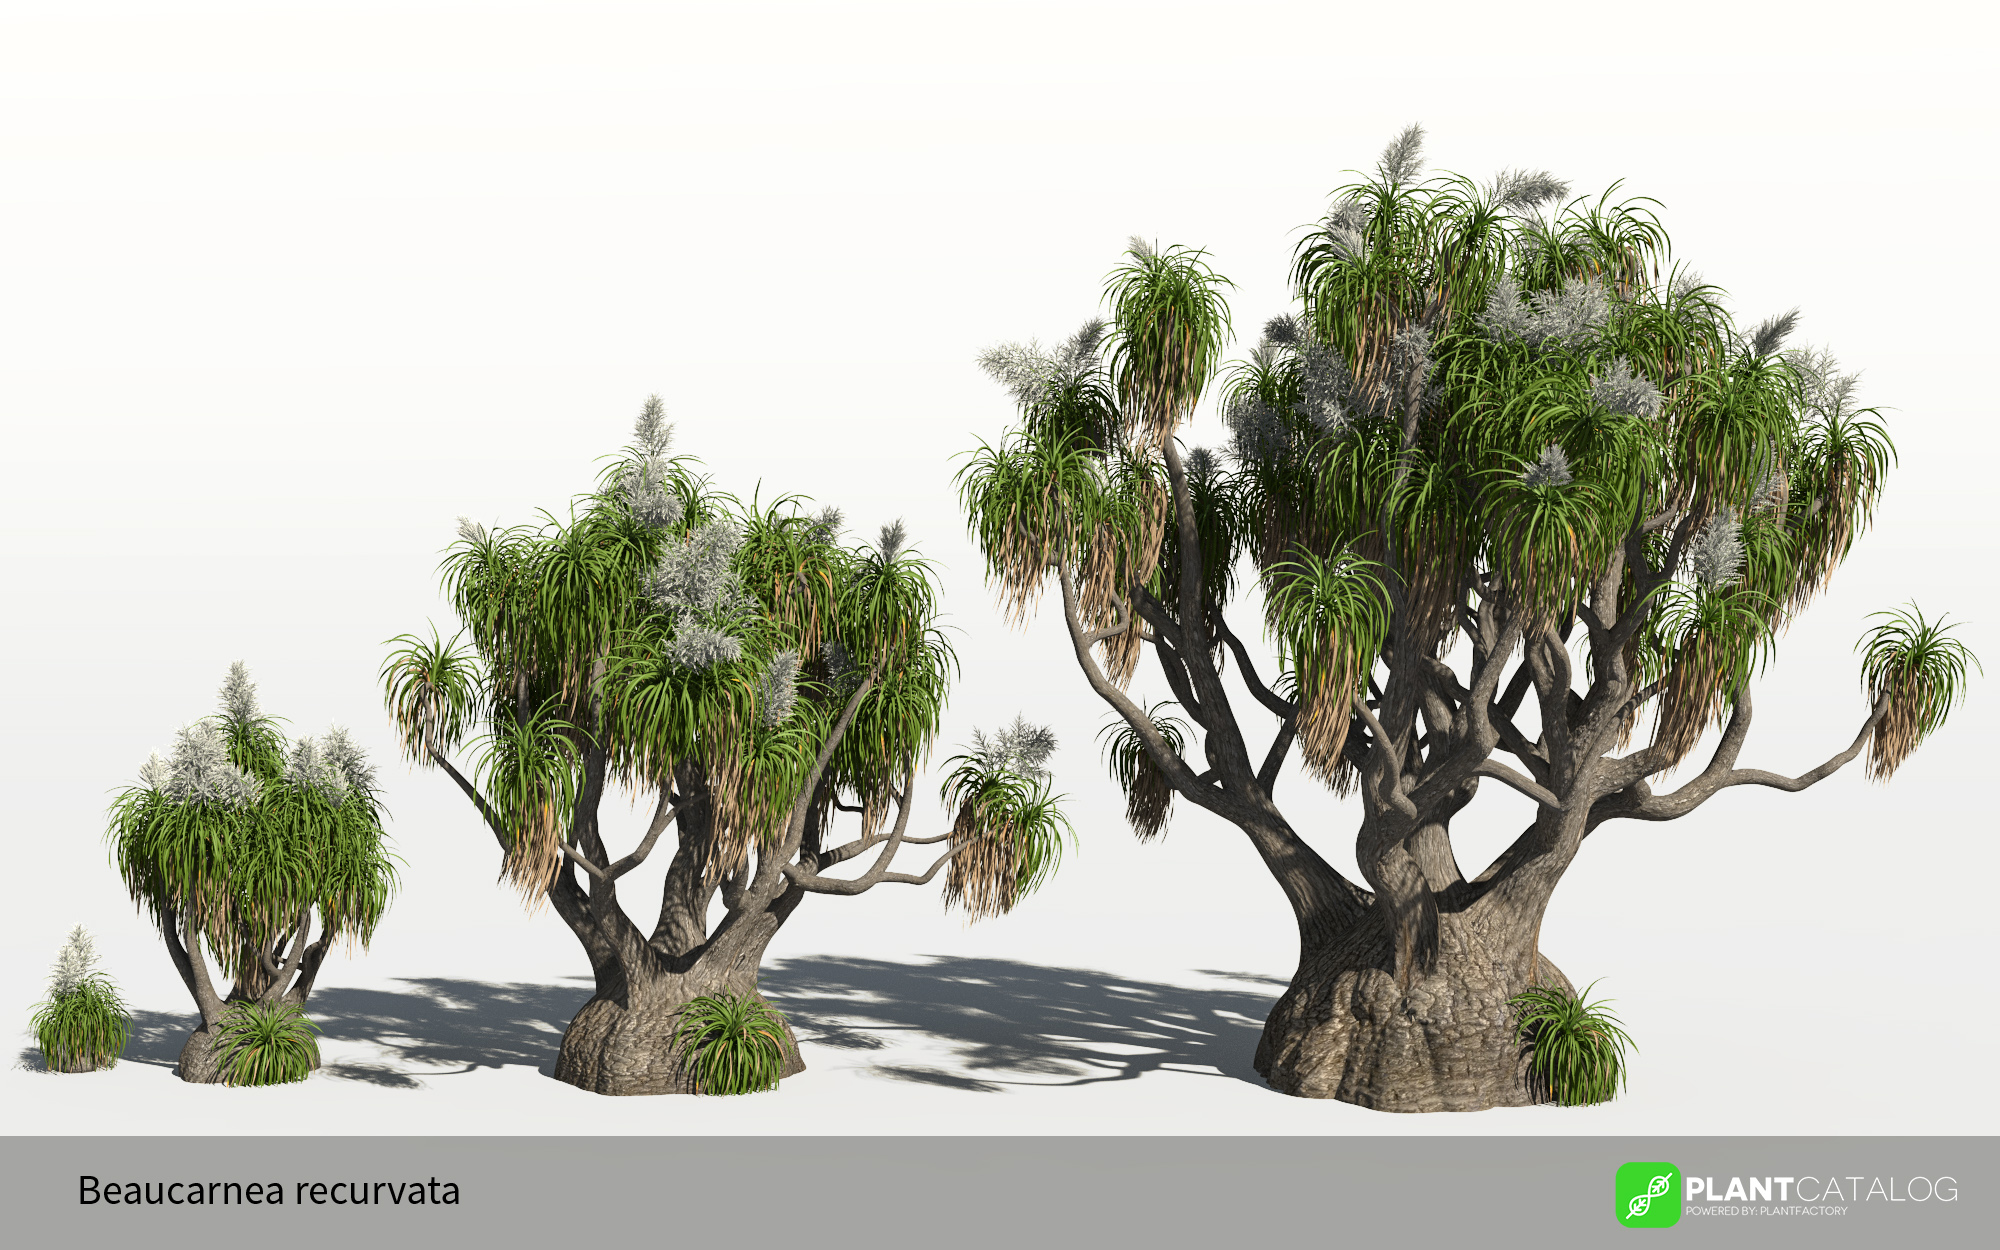 3D model of the Elephant Foot - Beaucarnea recurvata - from the PlantCatalog, rendered in VUE